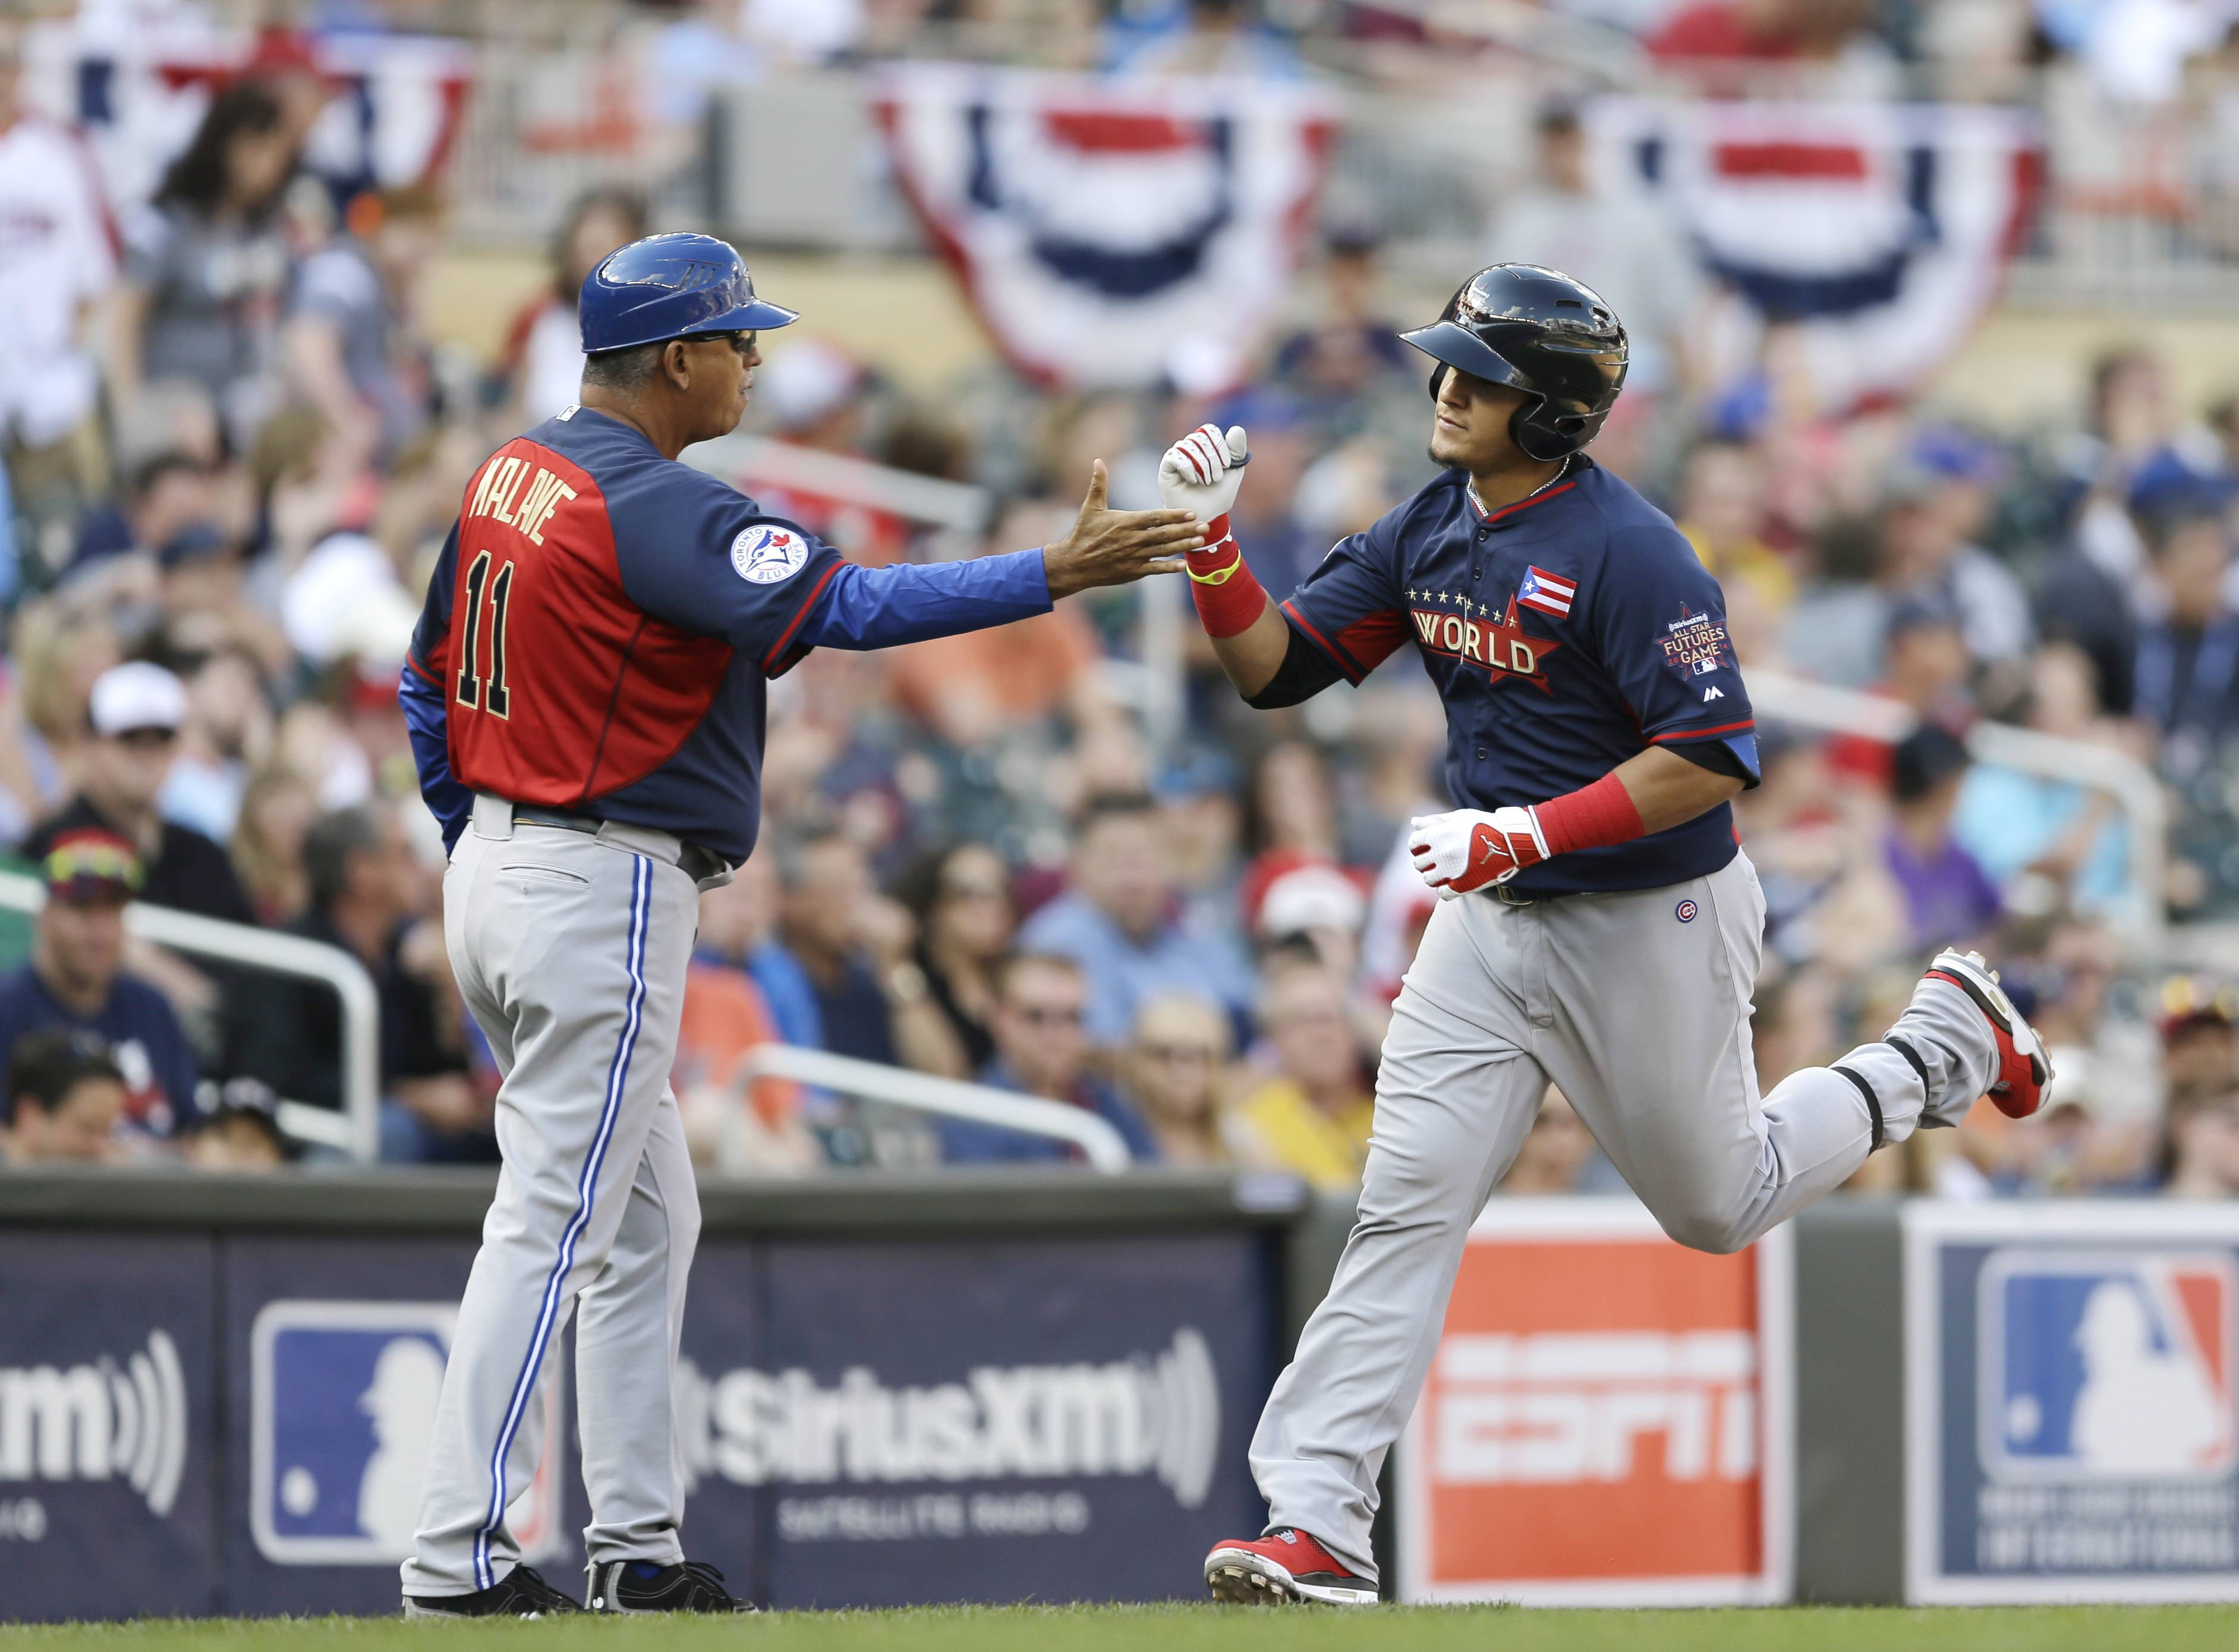 Cubs prospect Javier Baez, right, is greeted by third base coach Omar Malave, left, after hitting a two-run home run for the Worlds in the sixth inning of the All-Star Futures baseball game against the United States, Sunday, July 13, 2014, in Minneapolis. (AP Photo/Jeff Roberson)